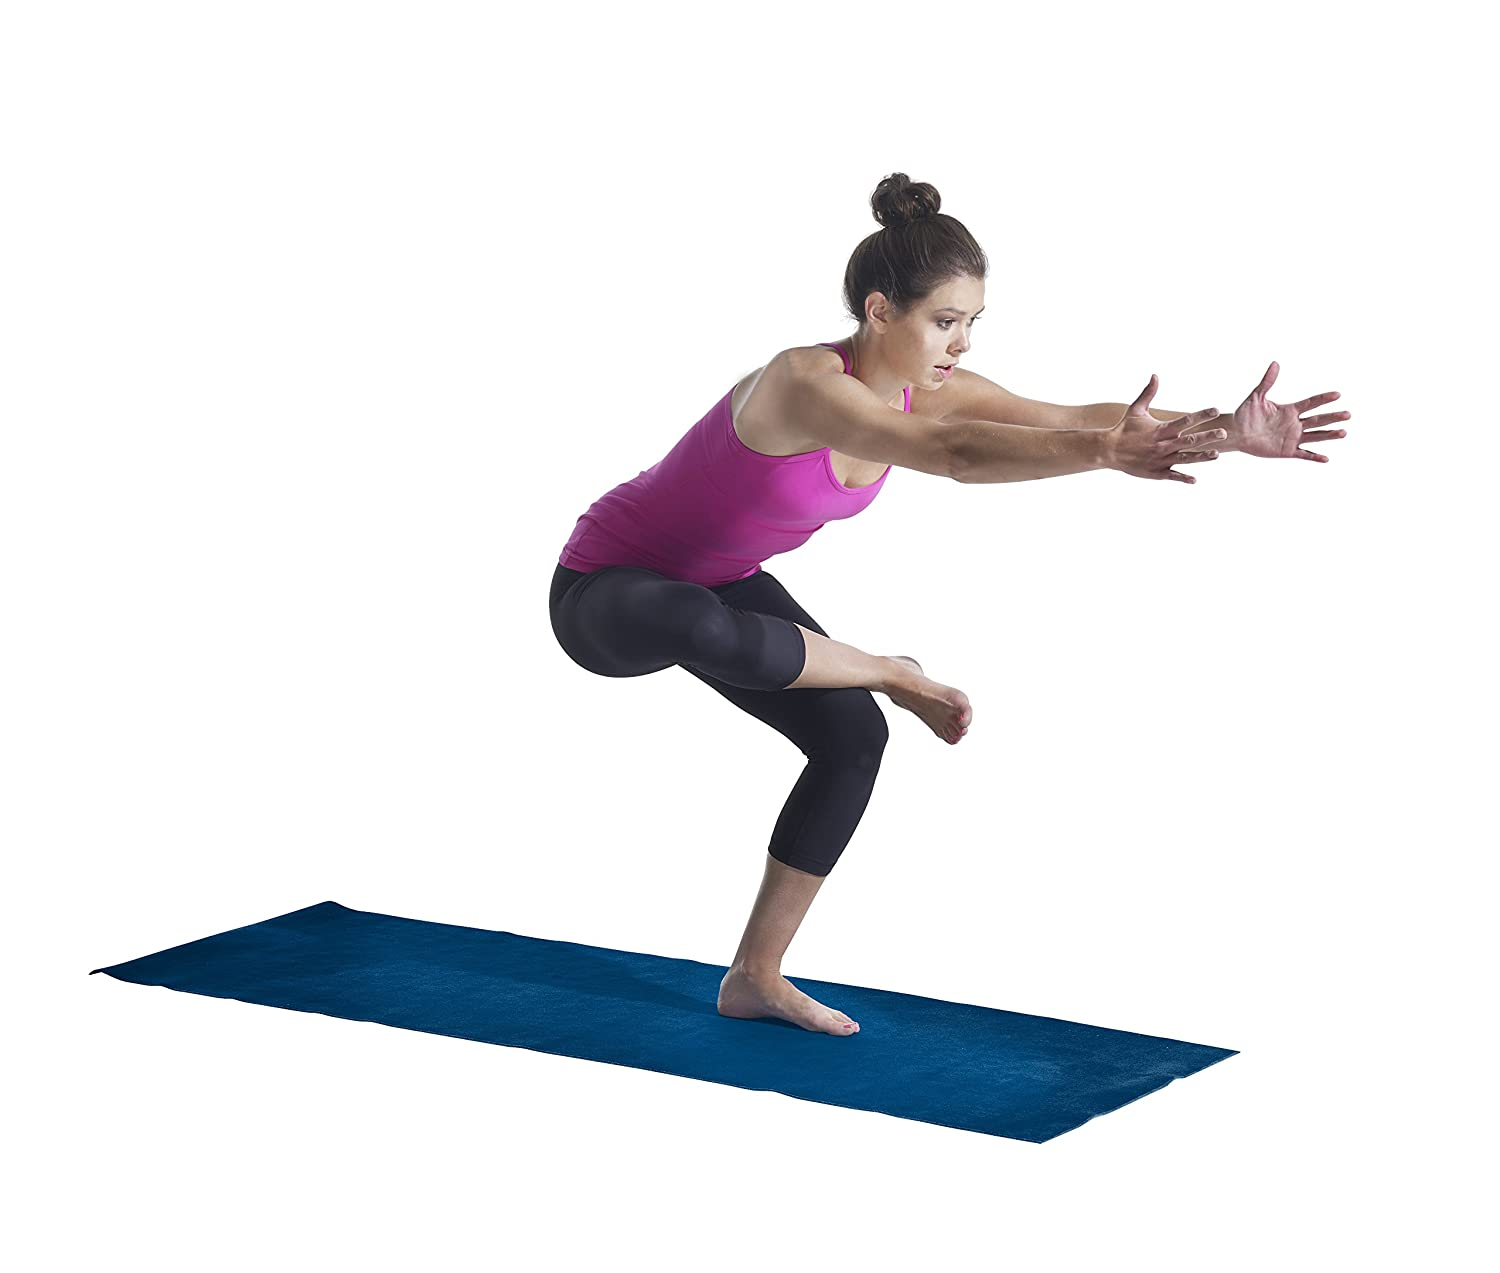 Amazon.com: Lotus caliente Combo de yoga mat: Sports & Outdoors